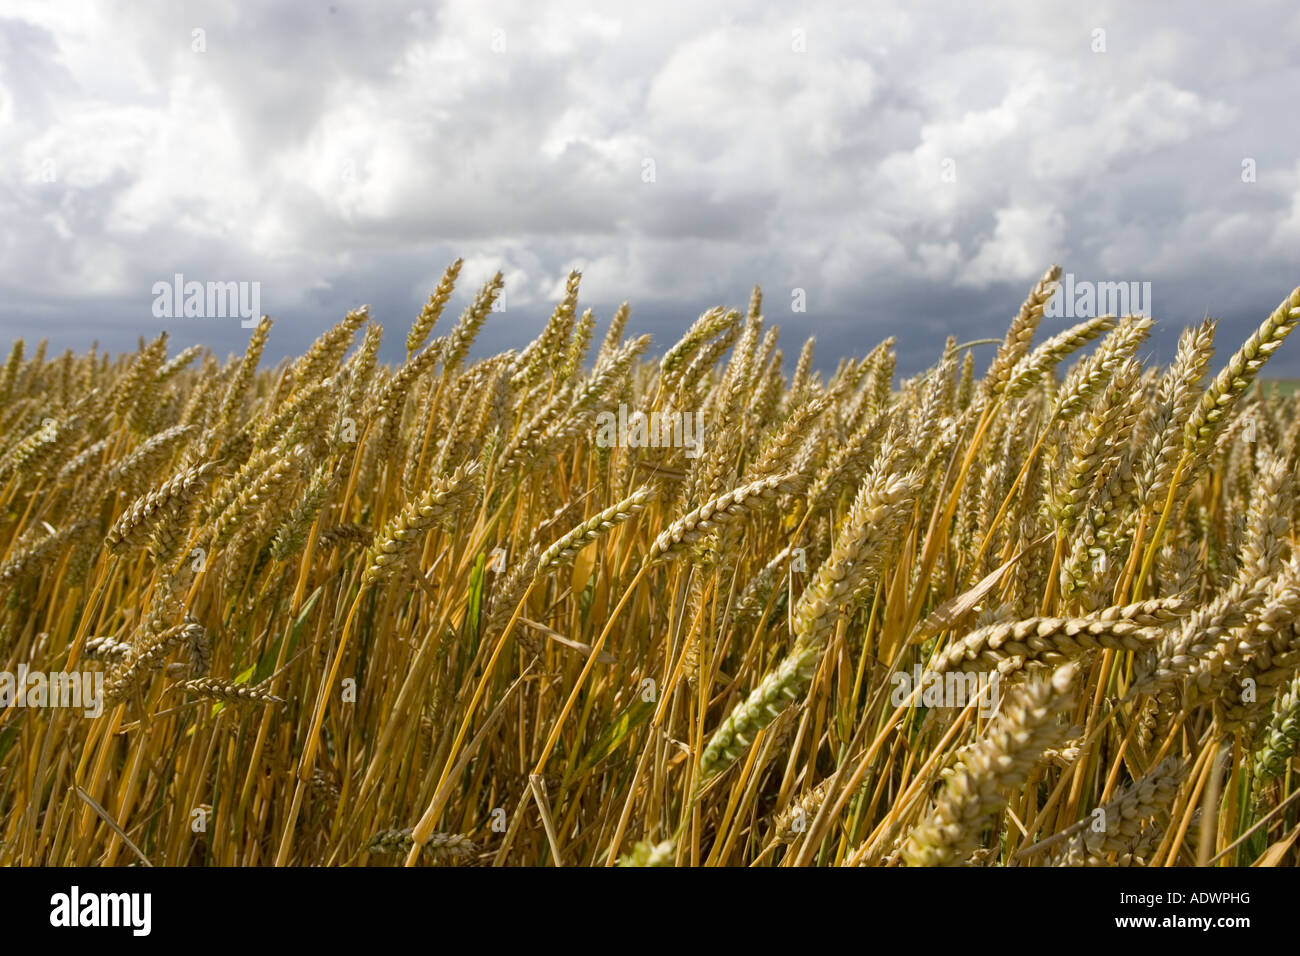 Wheat field in Marlborough Downs Wiltshire England United Kingdom - Stock Image